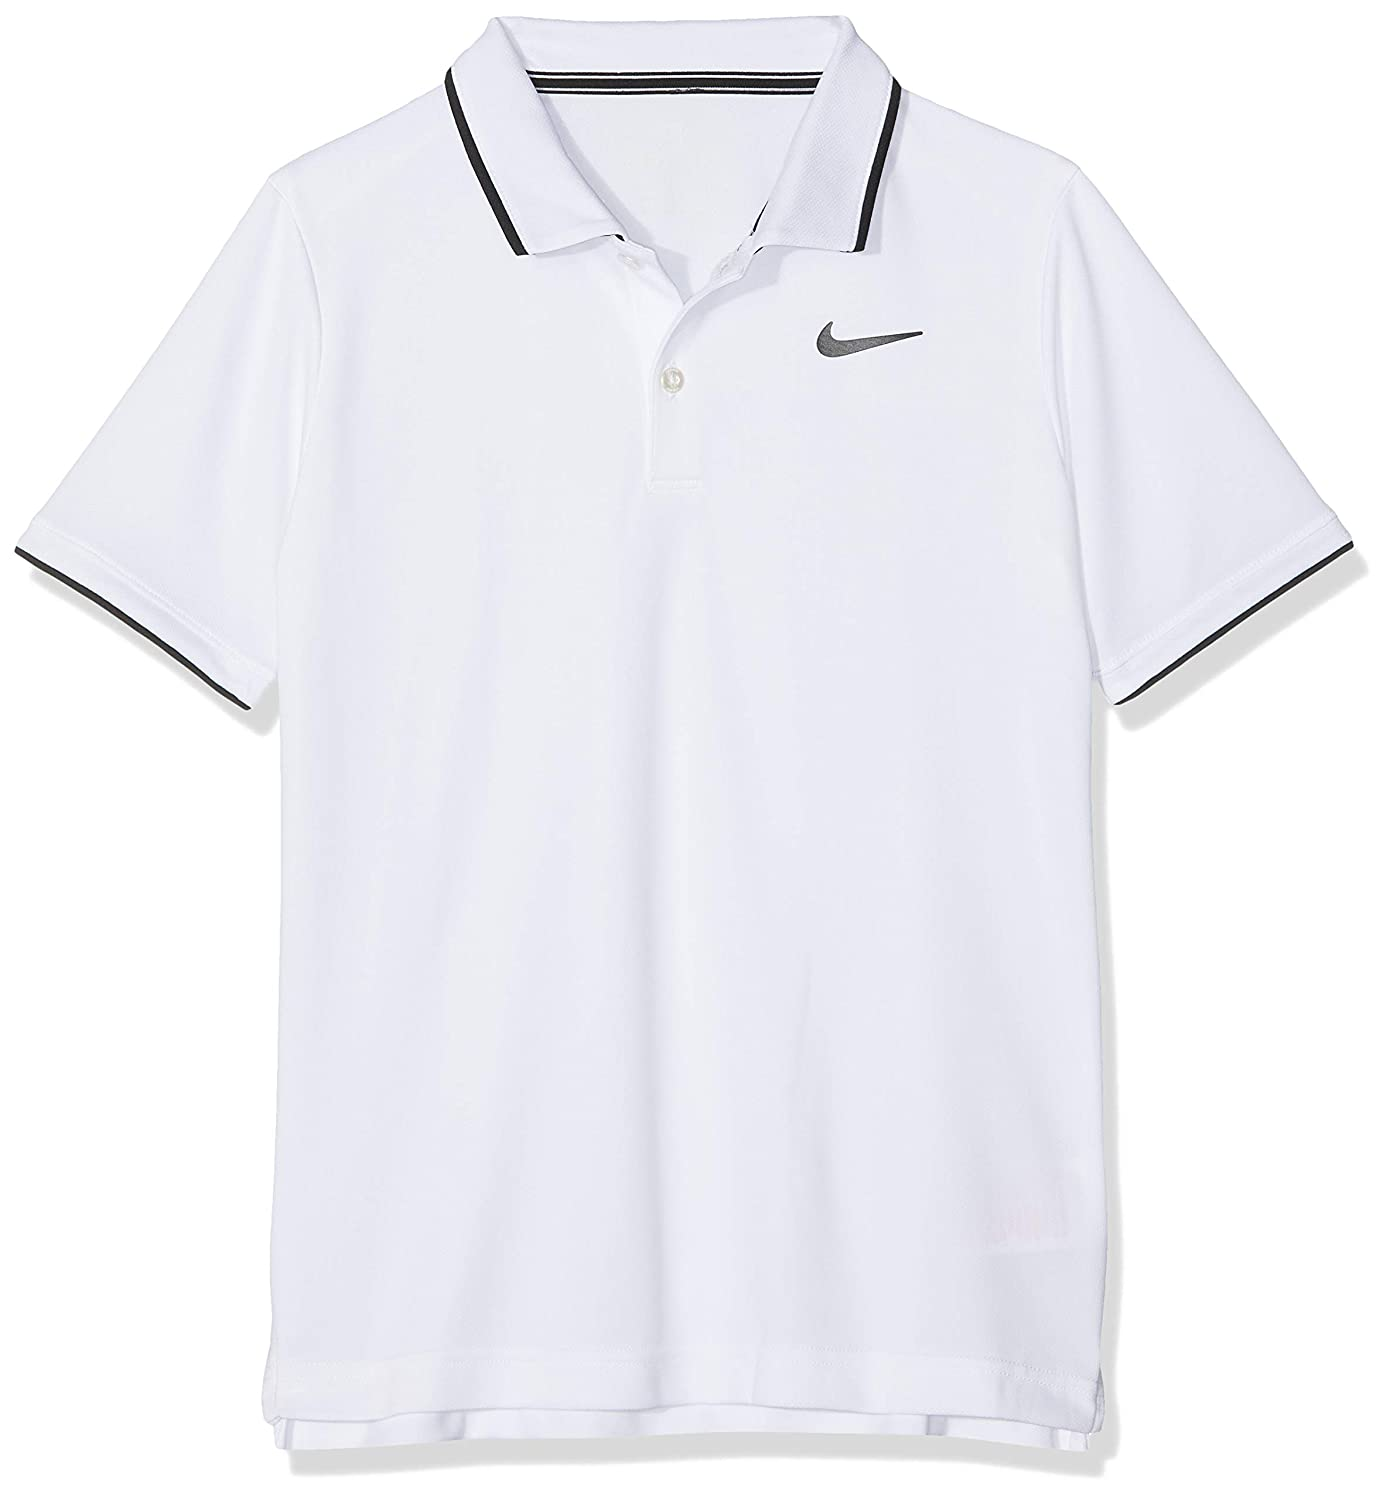 Nike B NKCT Dry Team Polo Shirt de Tenis, Niños: Amazon.es: Ropa y ...